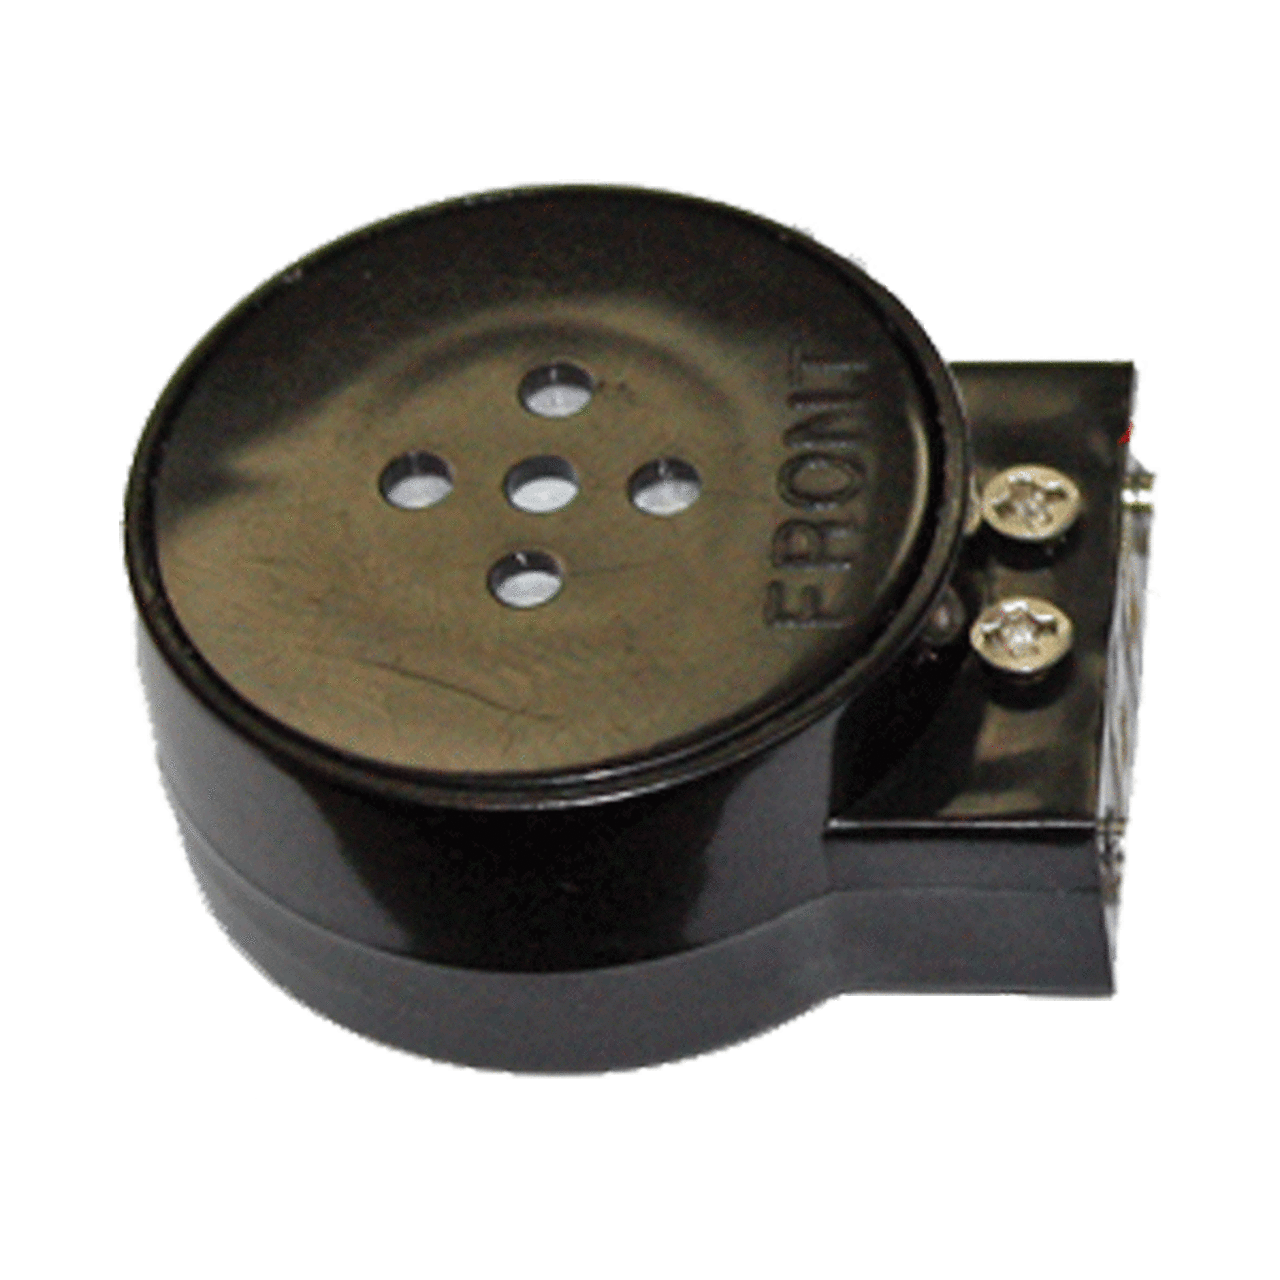 Microphone for High-Noise Environments